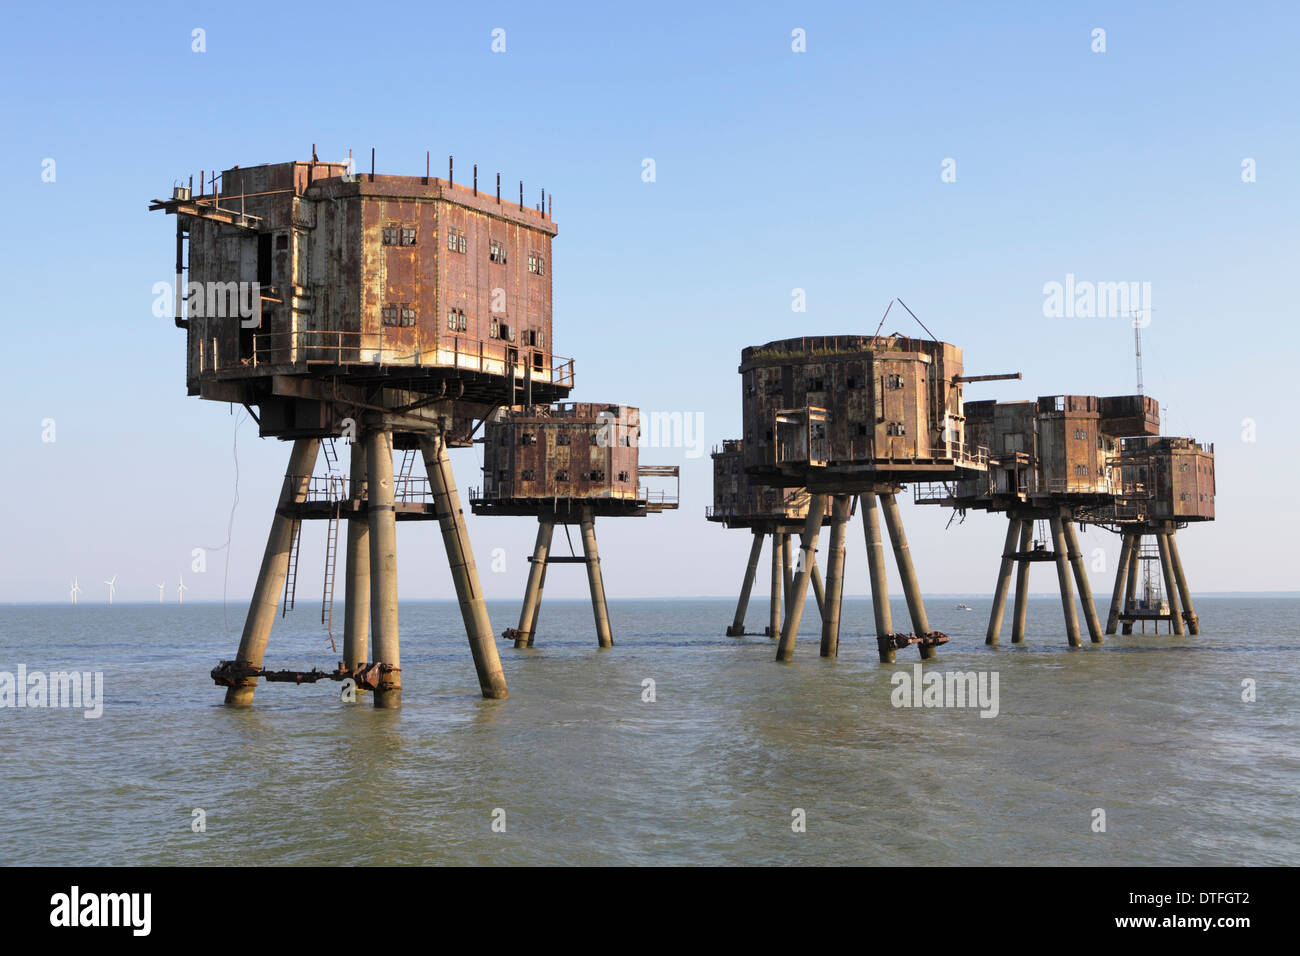 Red sands forts Thames estuary now abandoned. - Stock Image